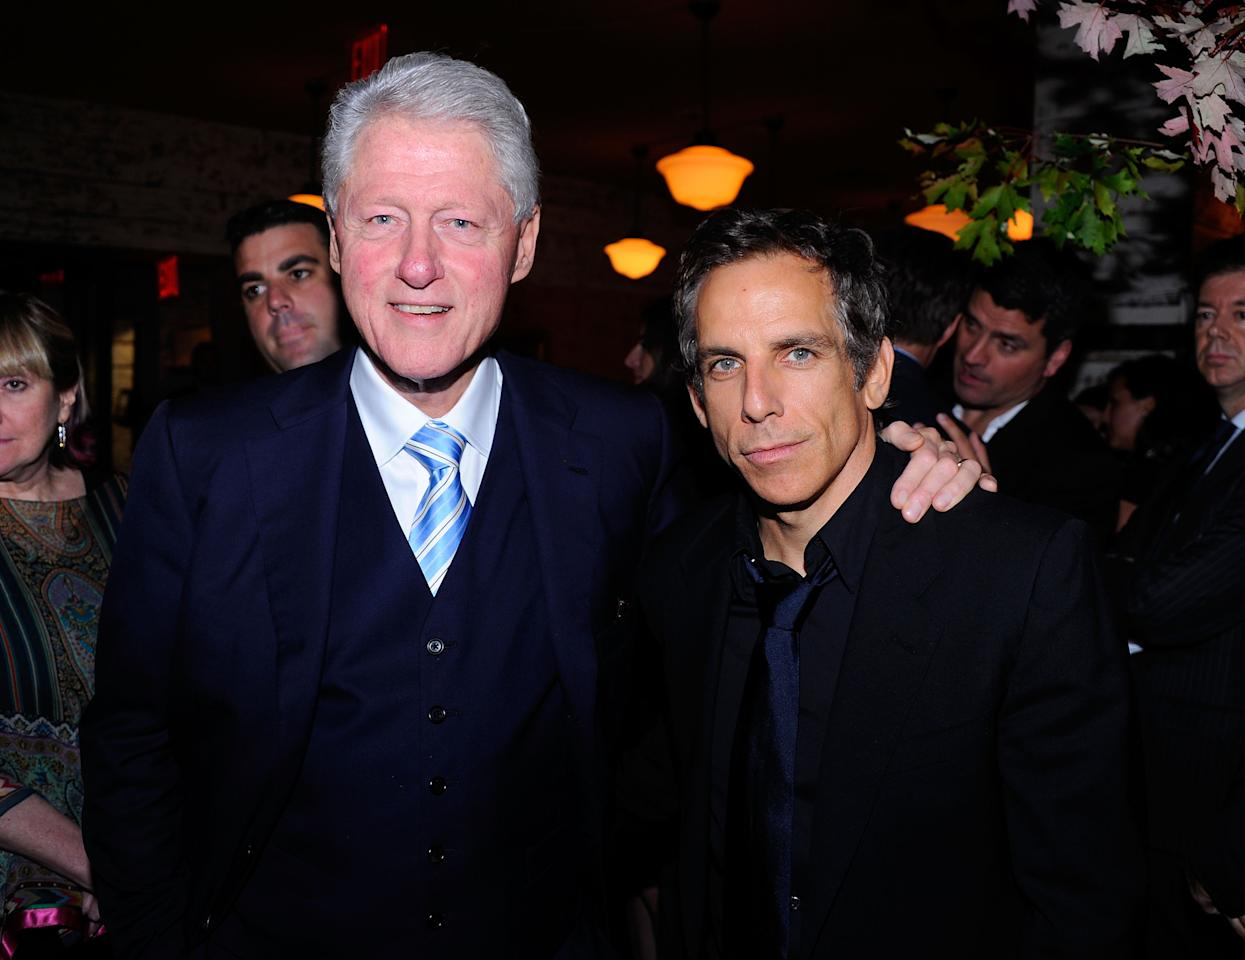 NEW YORK, NY - SEPTEMBER 23:  (EXCLUSIVE COVERAGE) Former President Bill Clinton and Ben Stiller attend the Artists for Haiti dinner to benefit the Stiller Foundation at Almond on September 23, 2011 in New York City.  (Photo by Andrew H. Walker/Getty Images)